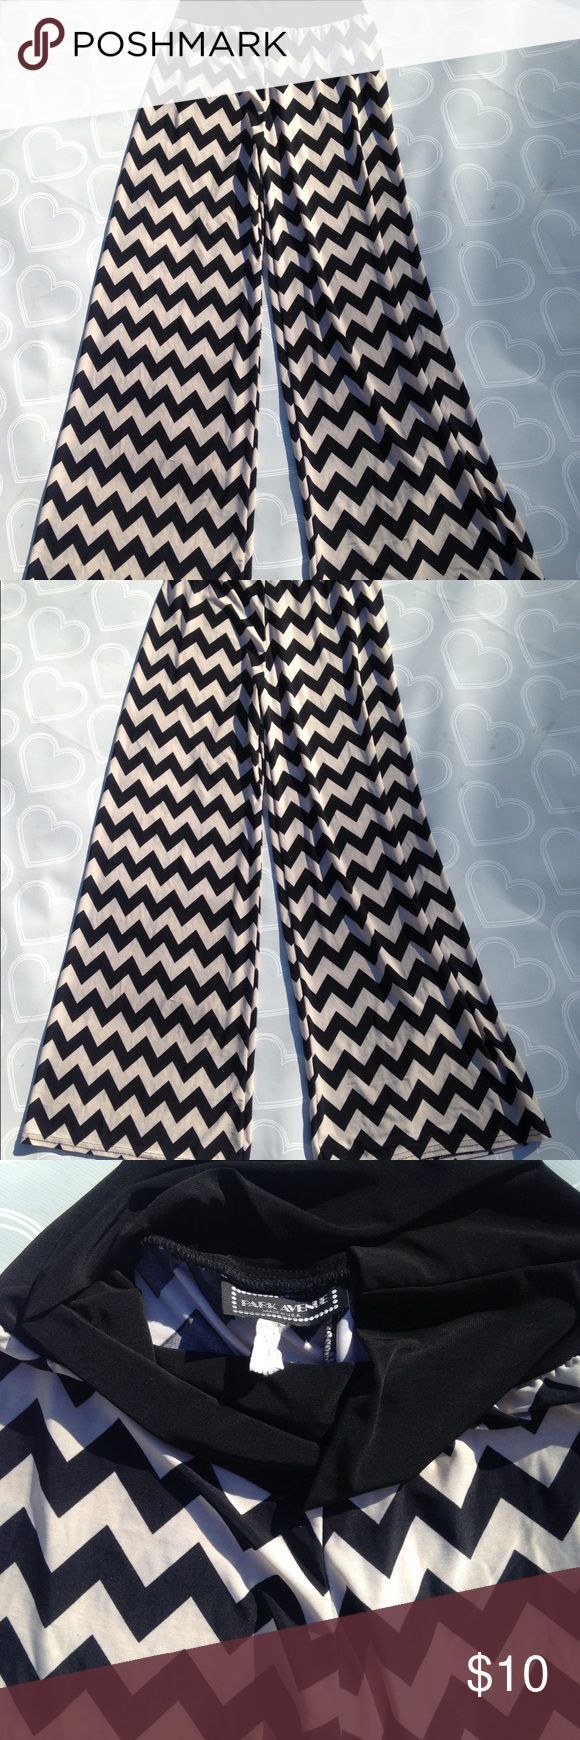 Women's chevron pants size medium Brand- Park Avenue women's size medium Palazzo pants. Inseam 31 inches- Black and Tan chevron. In my opinion since the waist is stretchy I think a size small could also wear them- I am a size medium and they fit me comfortably! EUC- no stains- Park Avenue Pants